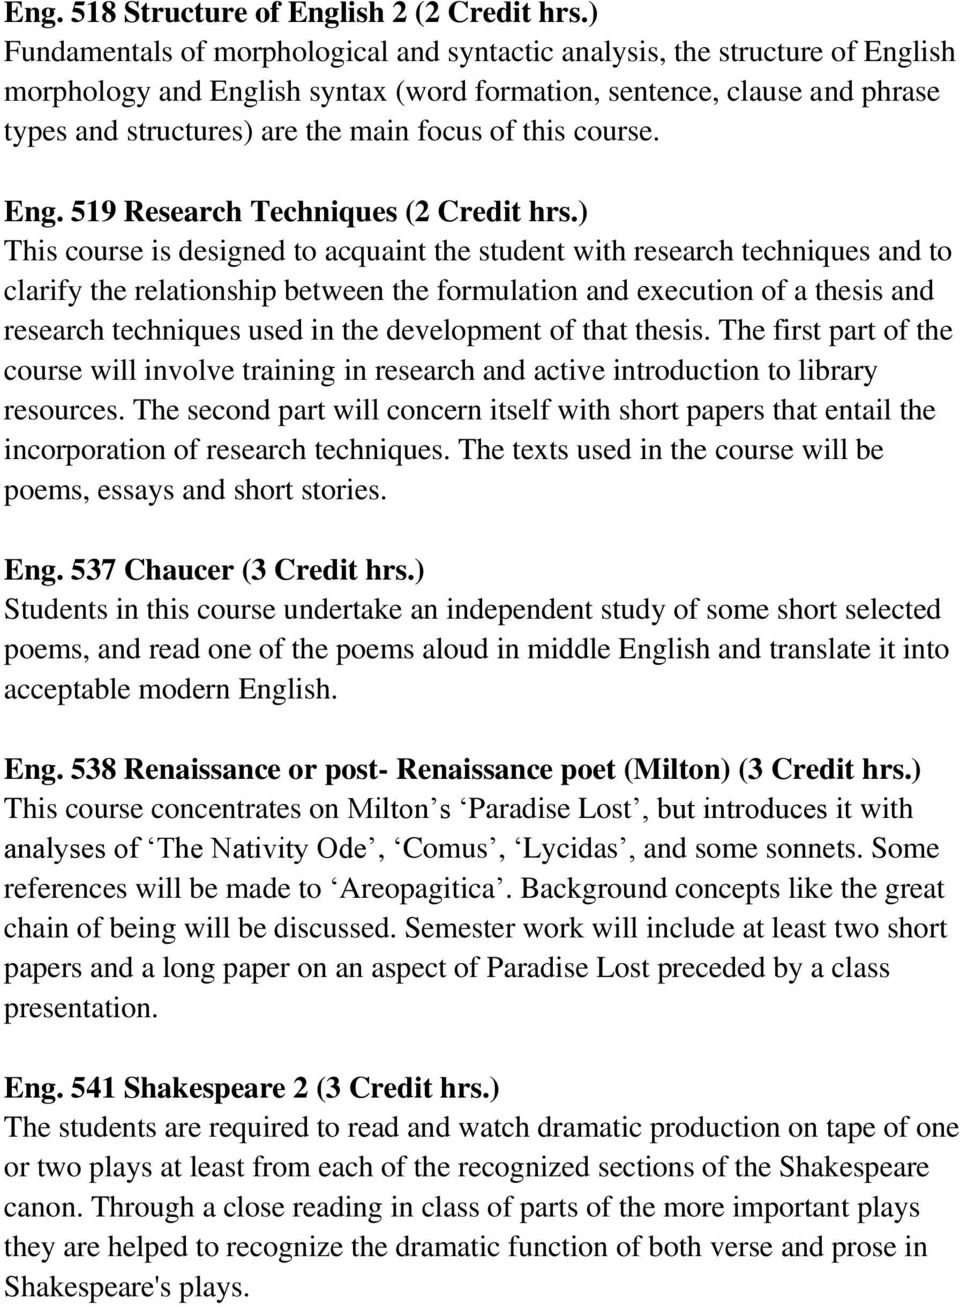 this course. Eng. 519 Research Techniques (2 Credit hrs.